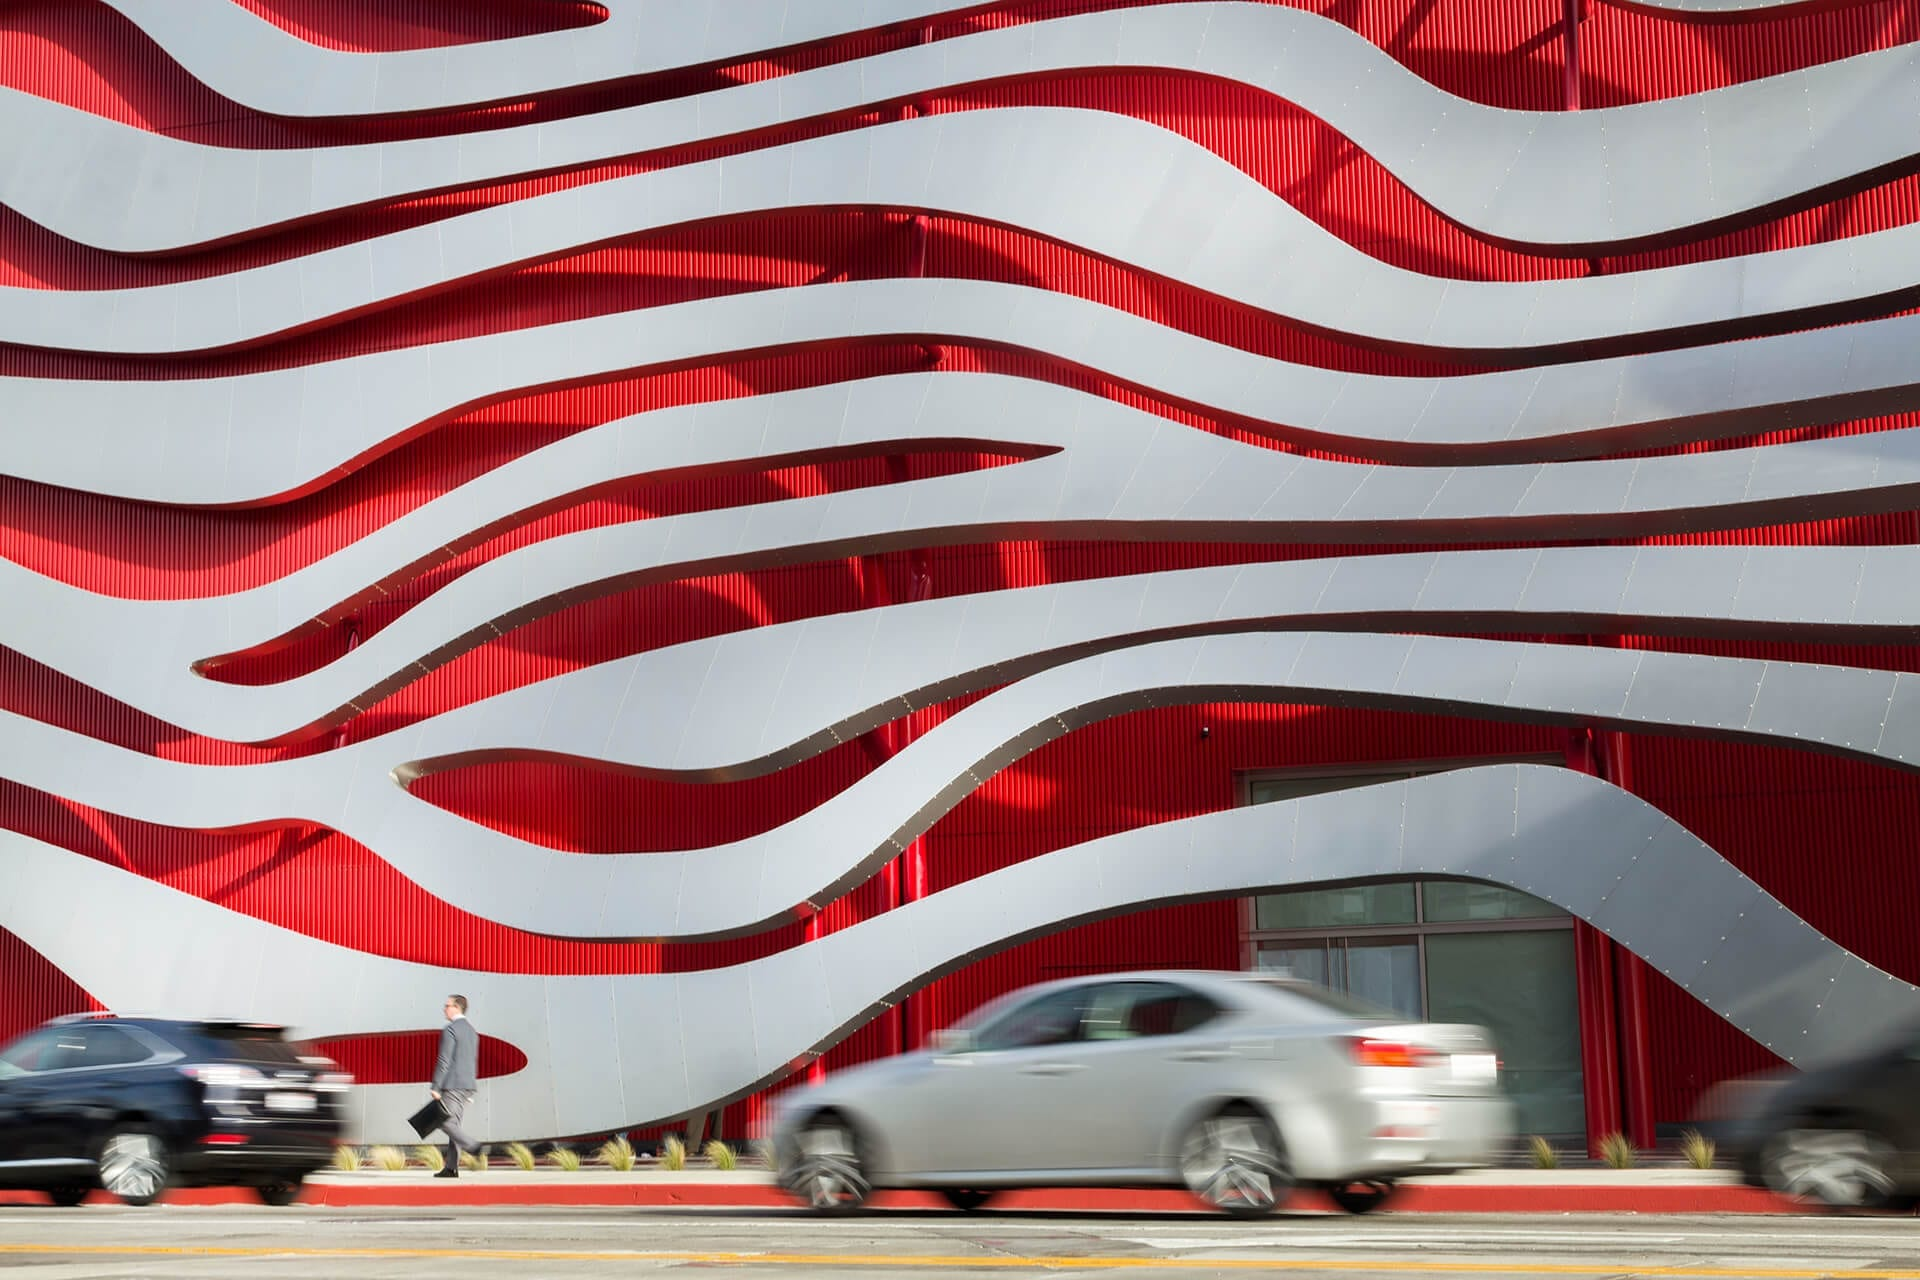 Detail of the facade of the Petersen Automotive Museum.